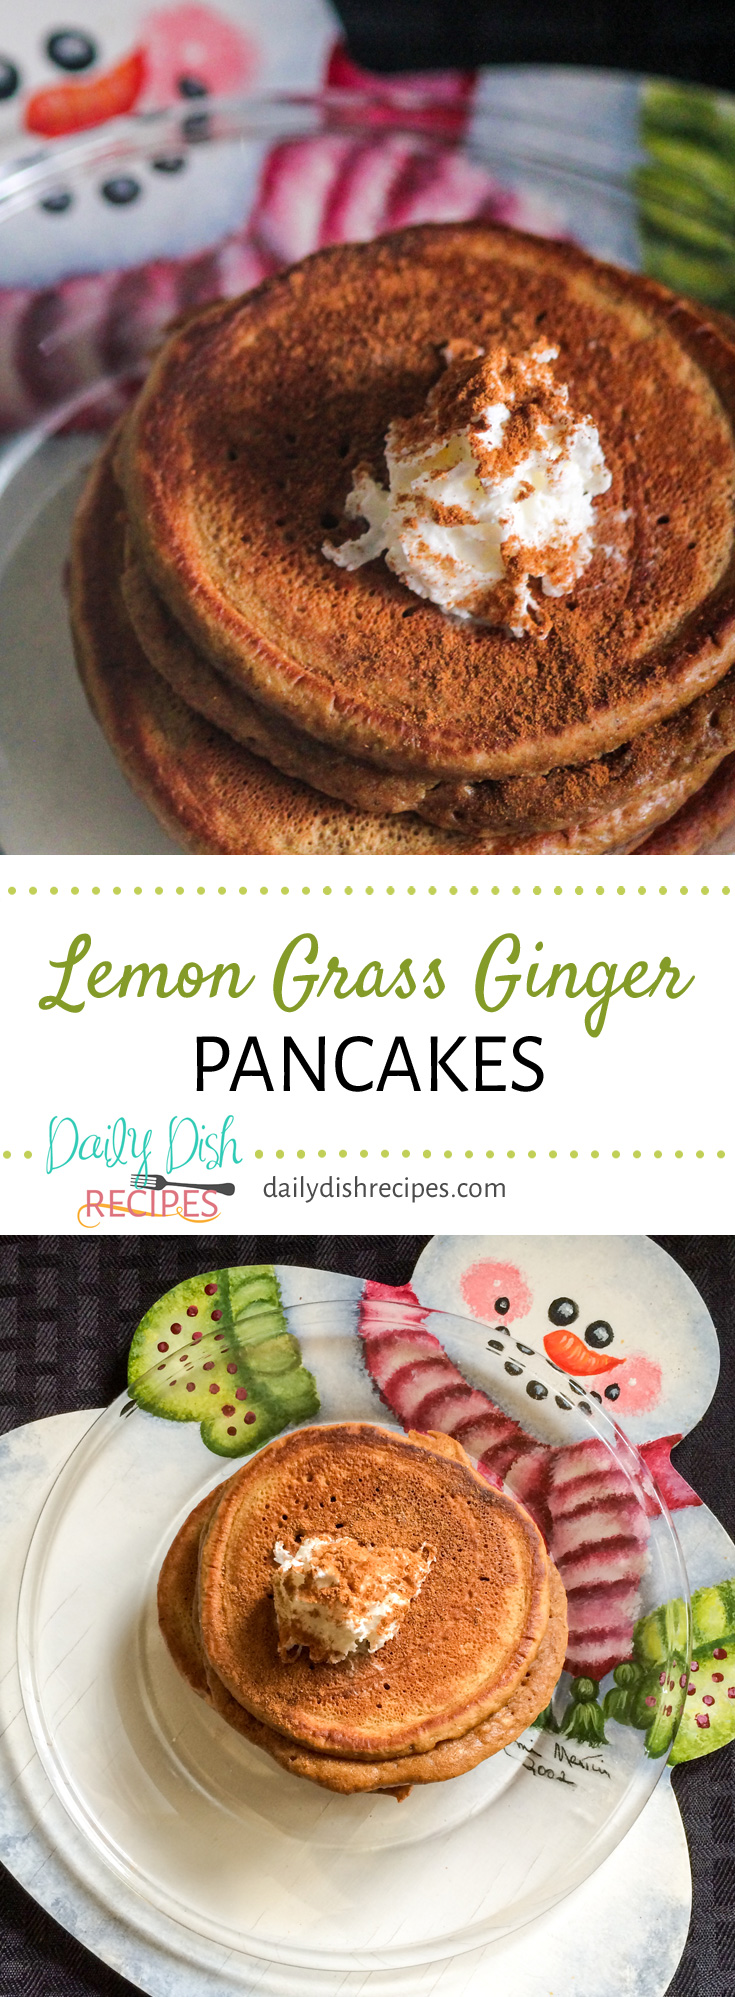 These Lemon Grass Ginger Pancakes are a fun twist on a classic breakfast food. Serve with or without syrup. Enjoy with whipped cream and a little nutmeg for lots of flavor! They  make a great breakfast or brunch idea!